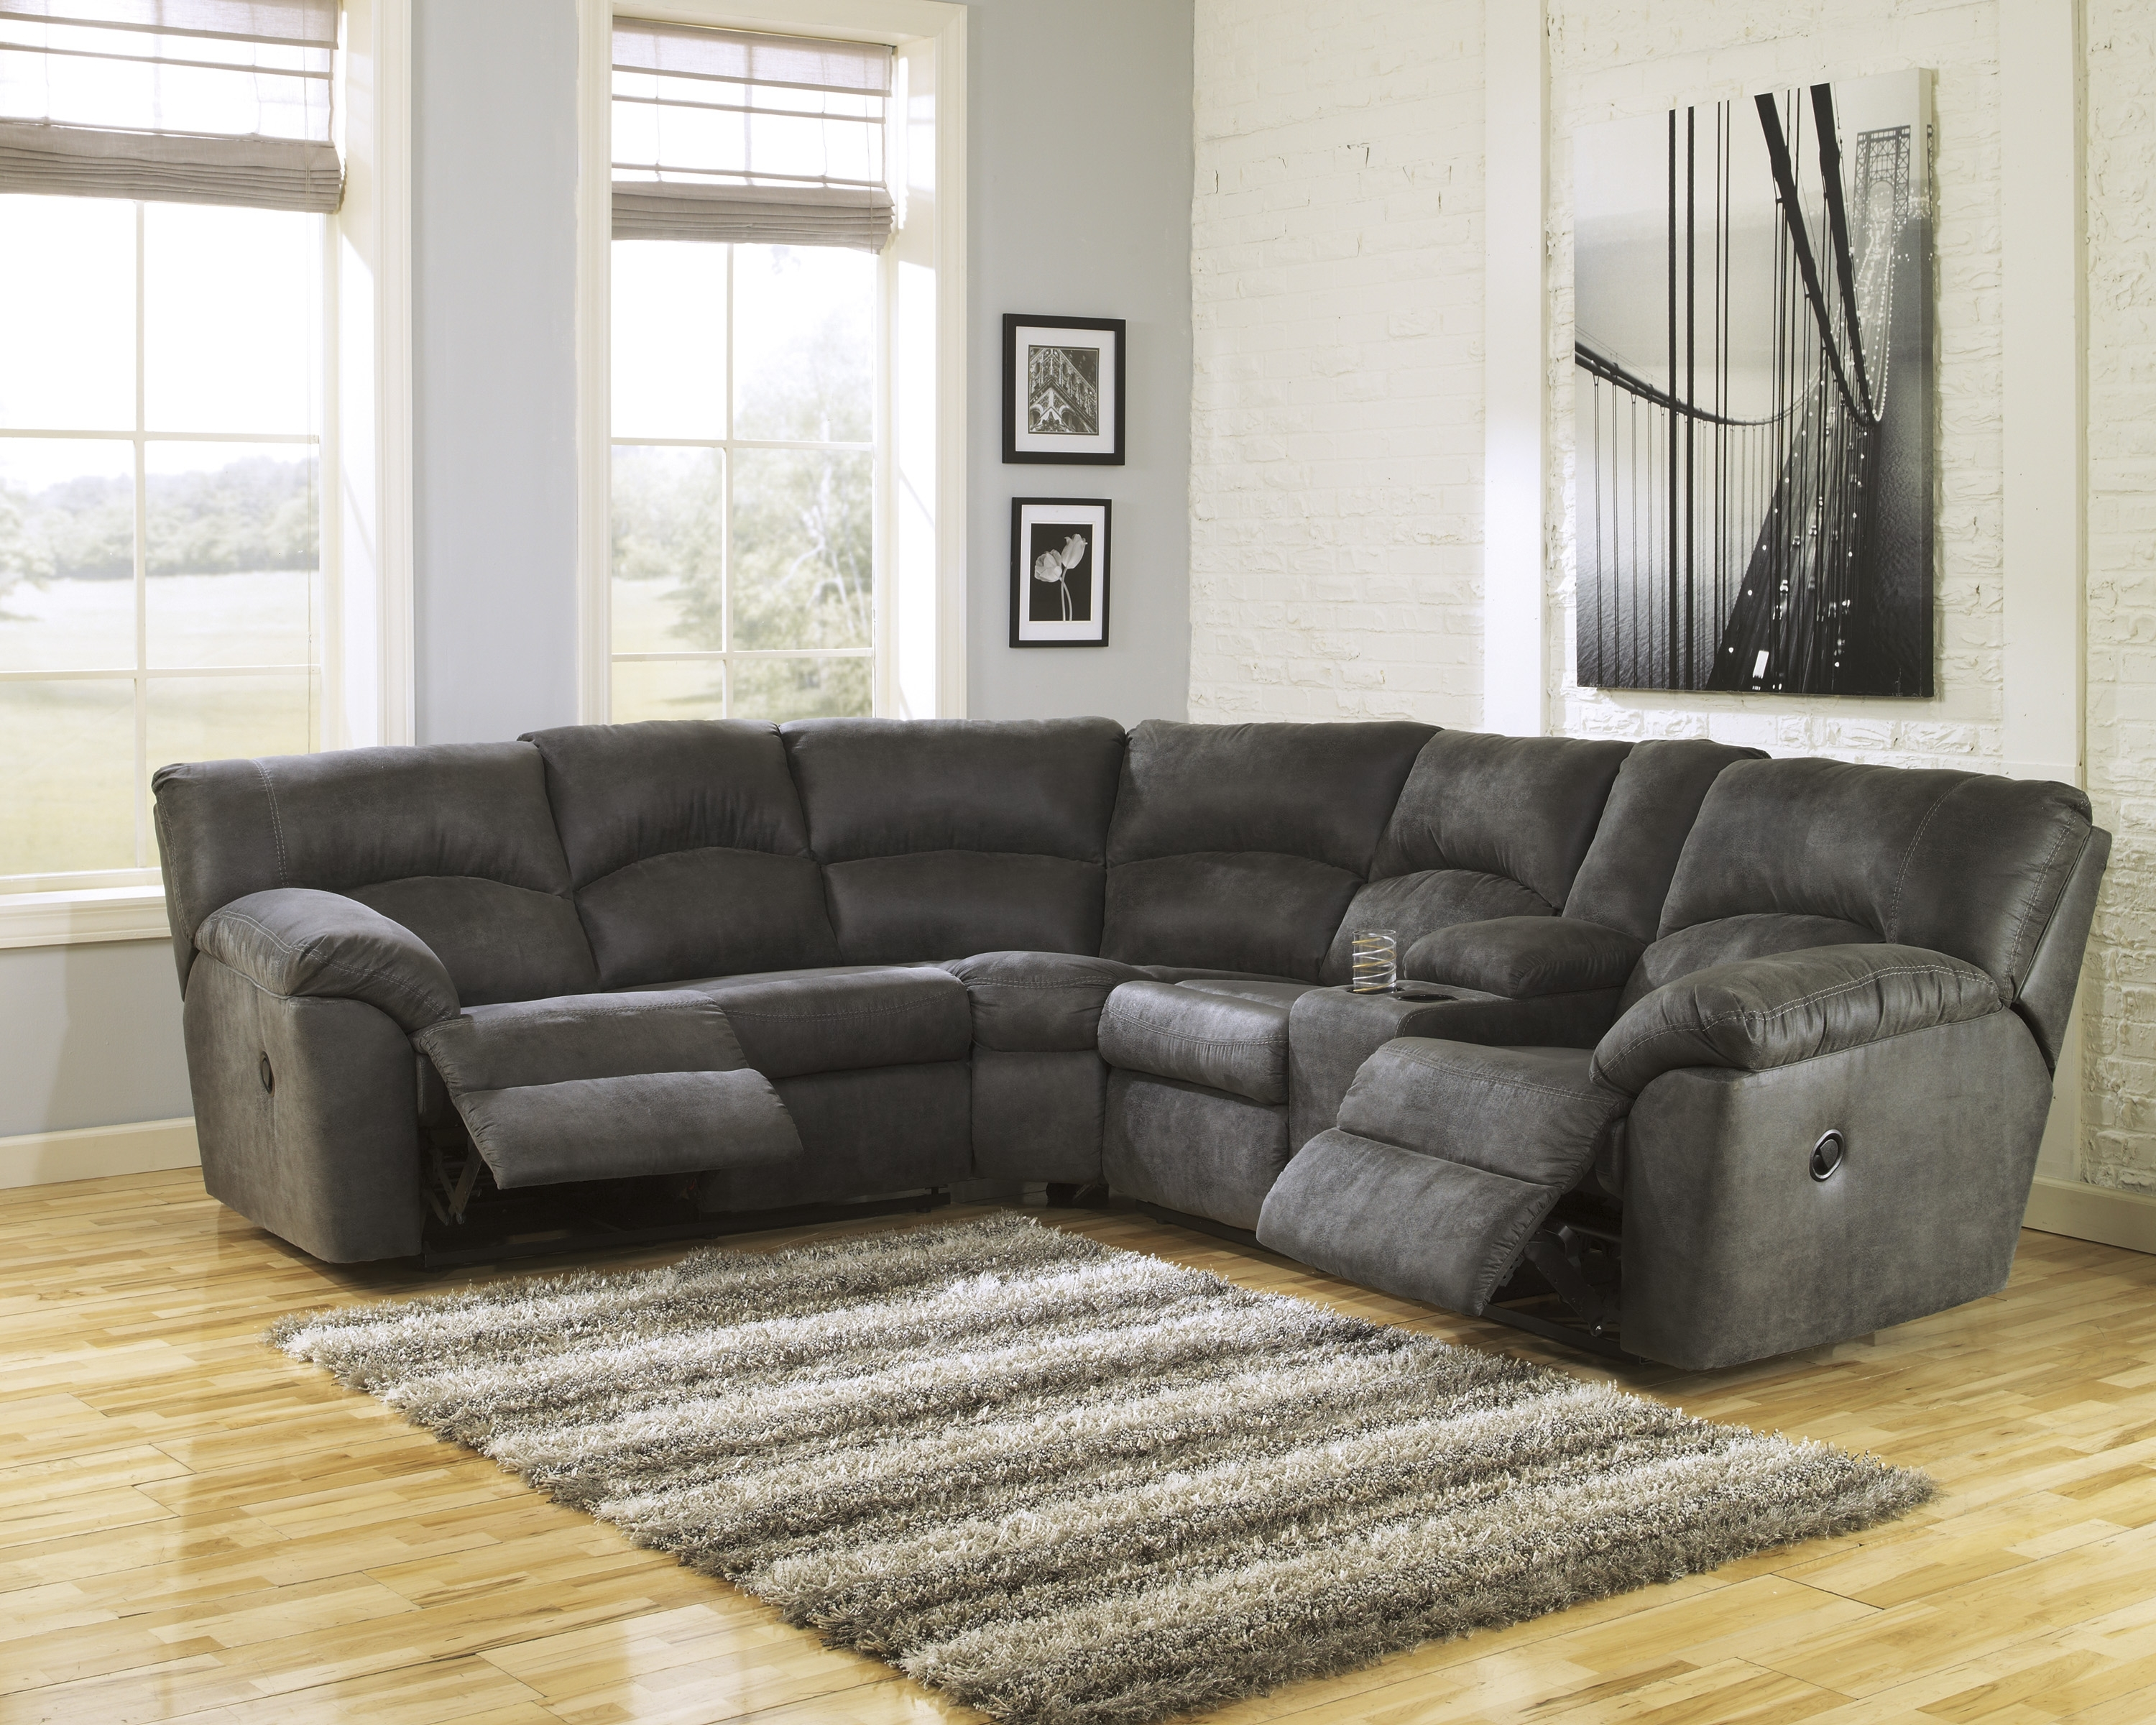 Sectionals Living Room | Furniture | Big Sandy Superstores pertaining to Denali Charcoal Grey 6 Piece Reclining Sectionals With 2 Power Headrests (Image 27 of 30)